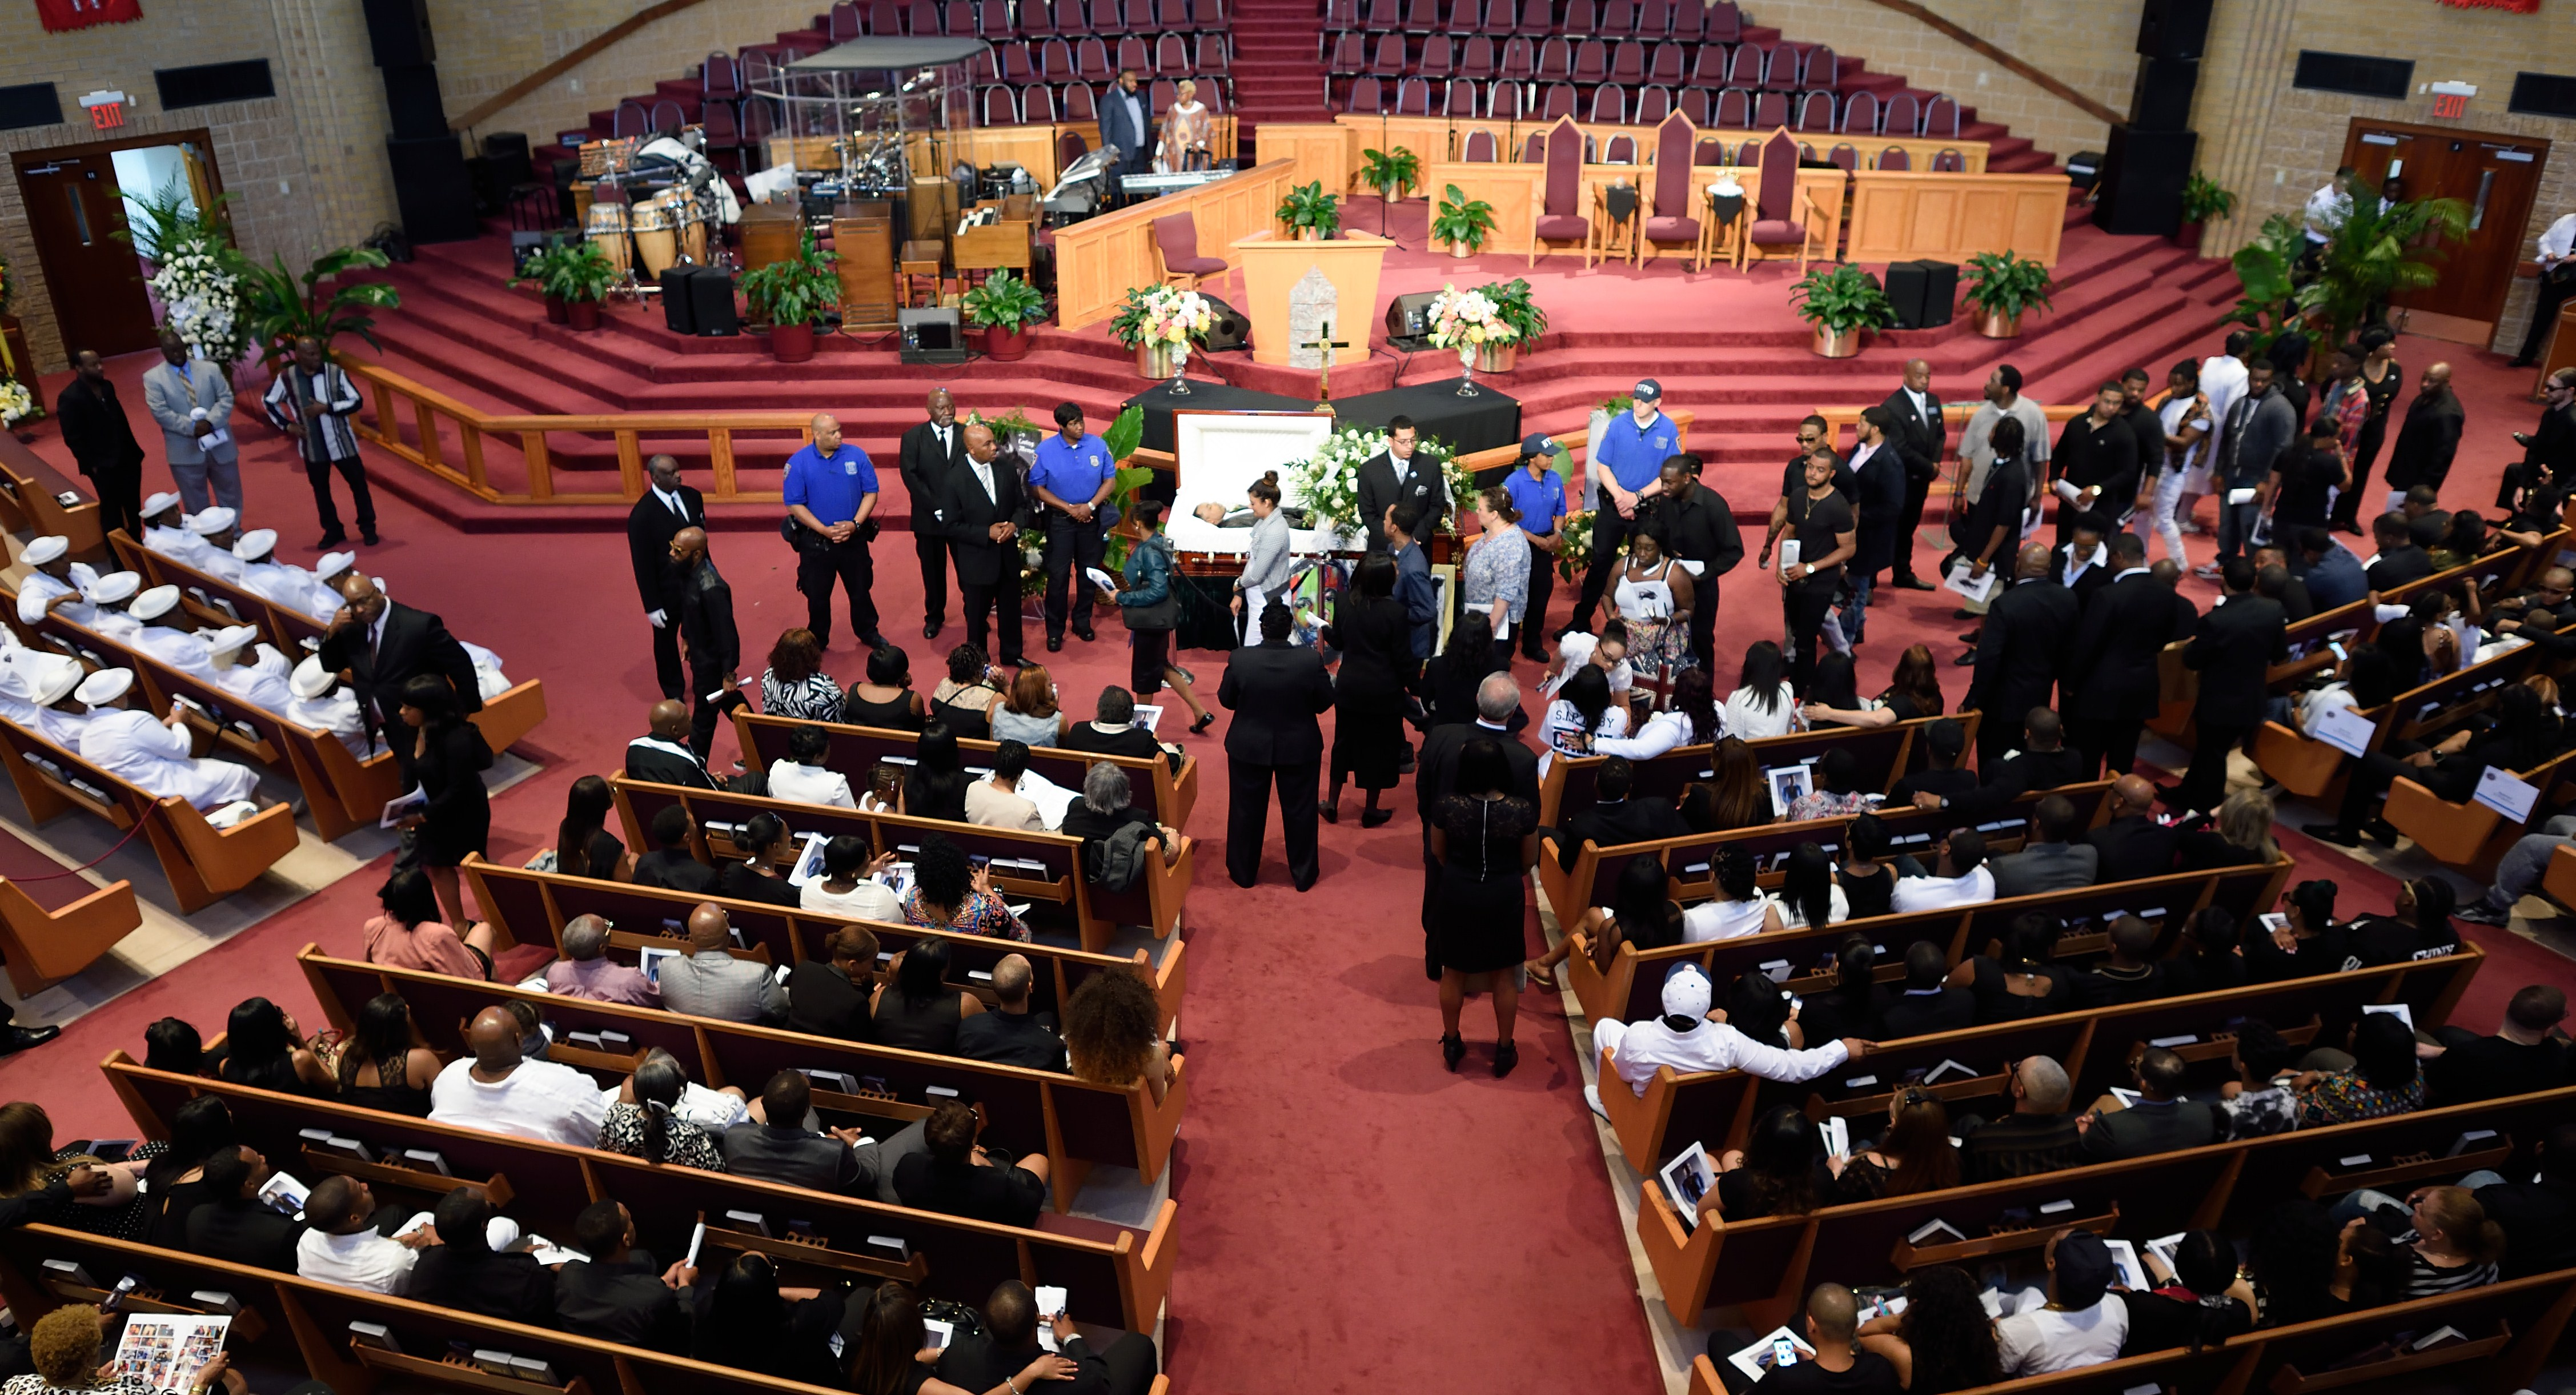 Mourners pass by the body of Rapper Chinx during his wake and funeral at Greater Allen A.M.E church May 26, 2015 in New York., a.k.a. Chinx was killed May 17 in a drive-by shooting in Queens. (Don Emmert/AFP/Getty Images)